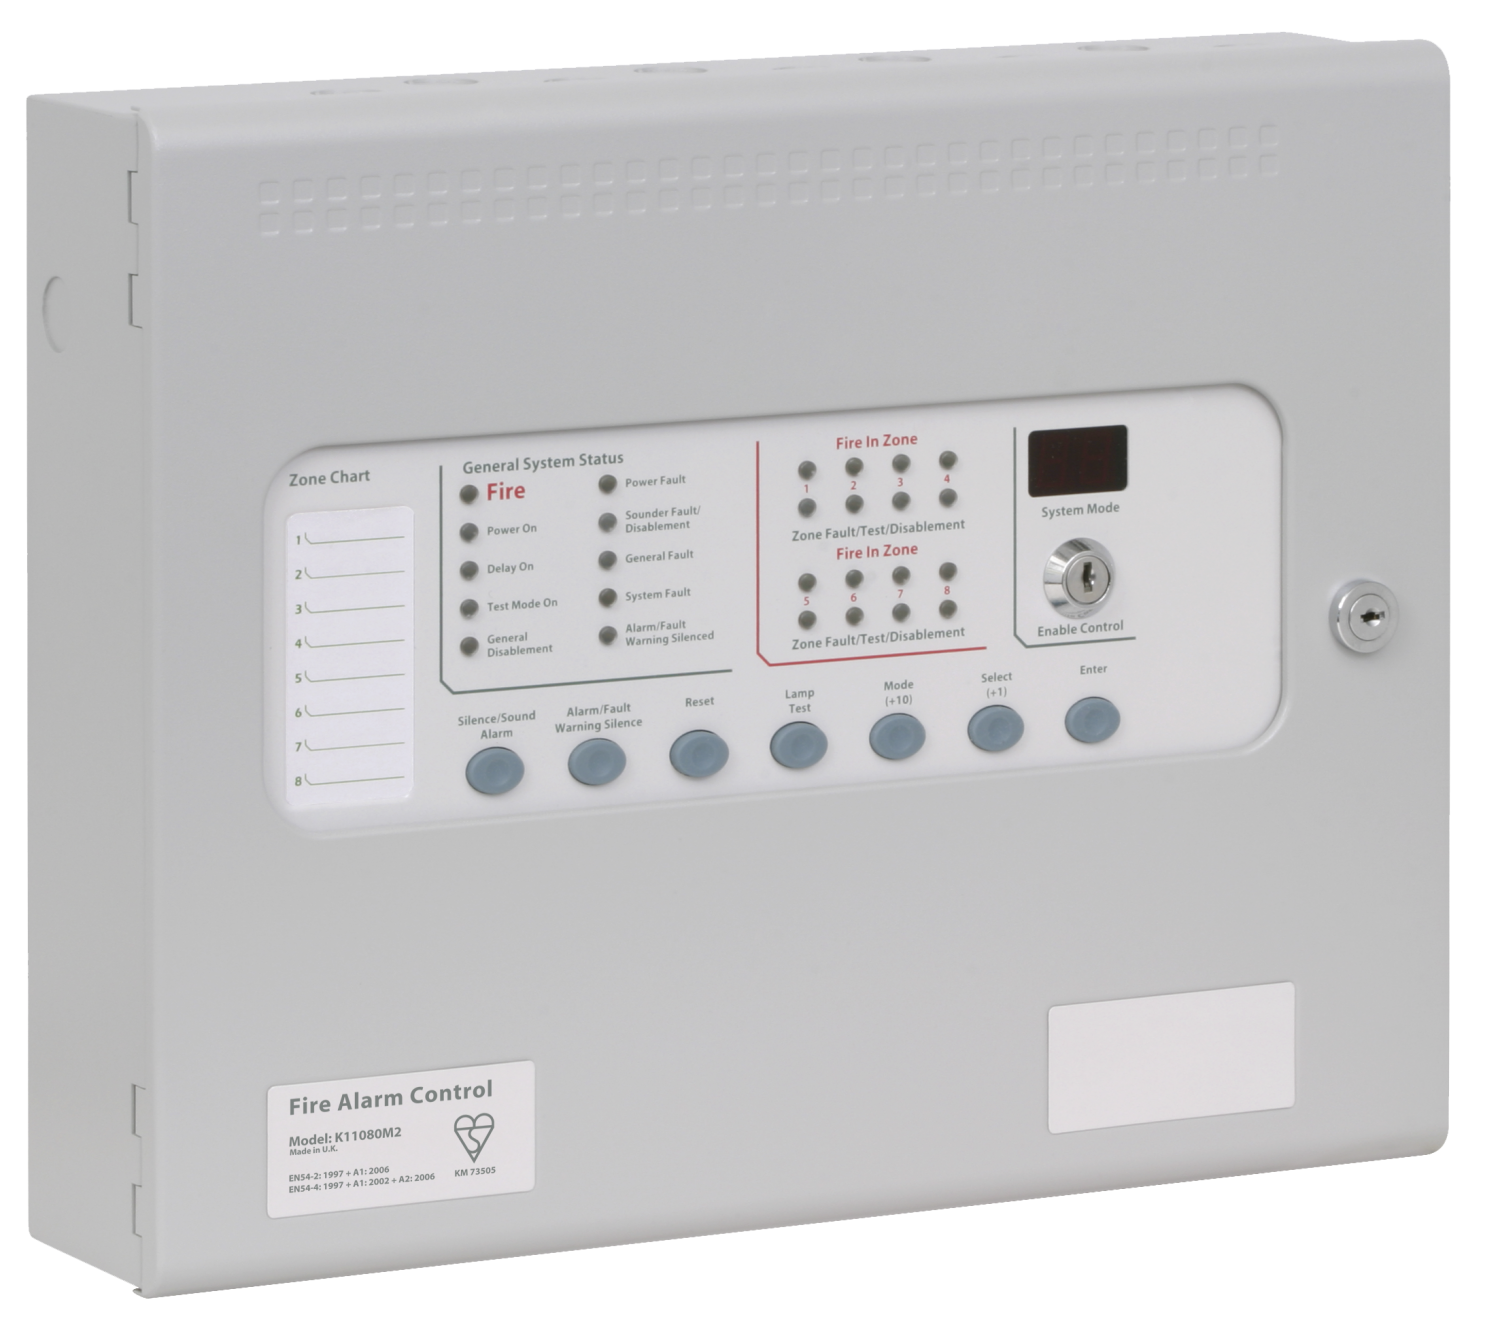 Sigma Cp Kentec Electronics Ltd Fire Alarm Circuits Are Presented Here But This Time A New Circuit